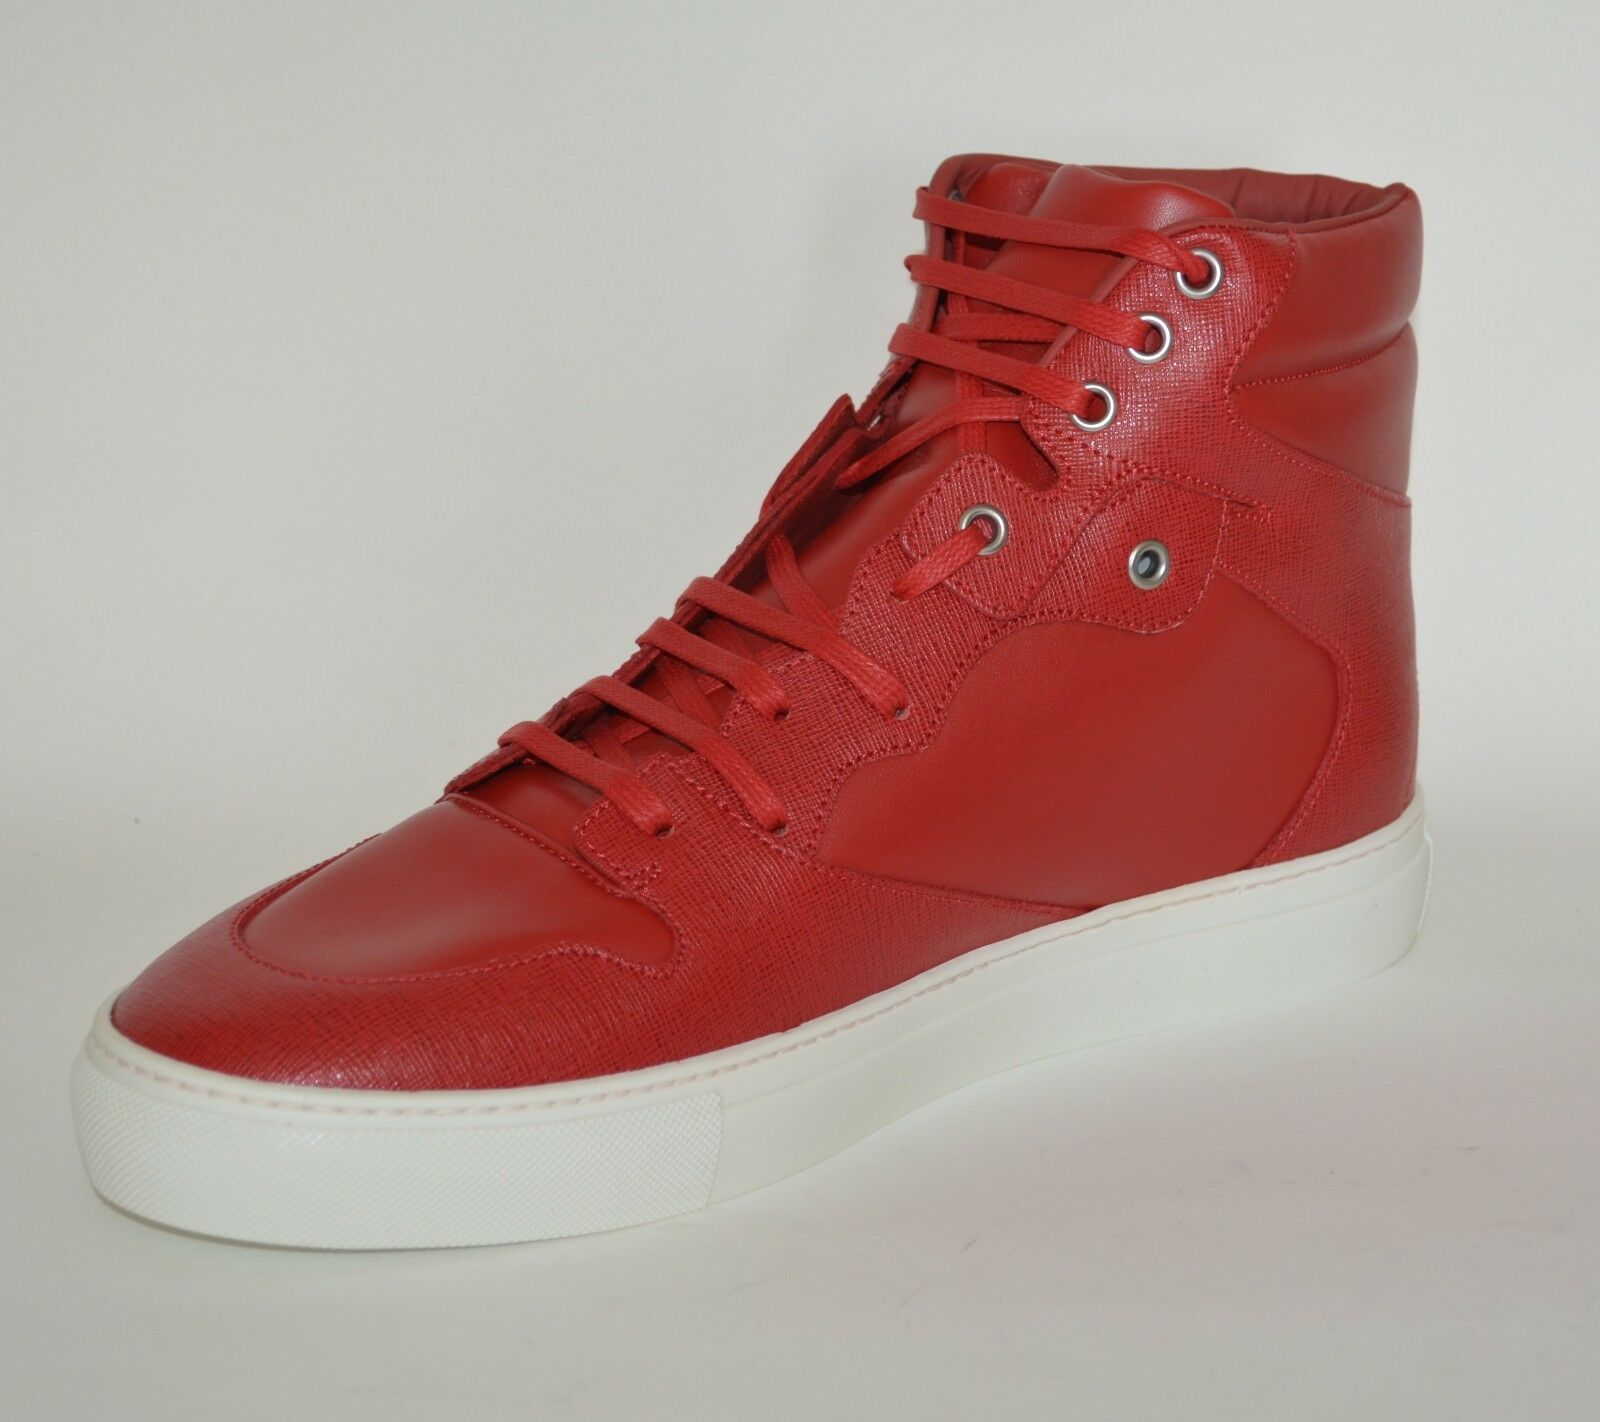 BALENCIAGA HITOP LEATHER SNEAKERS US 6 NEW MENS  RED